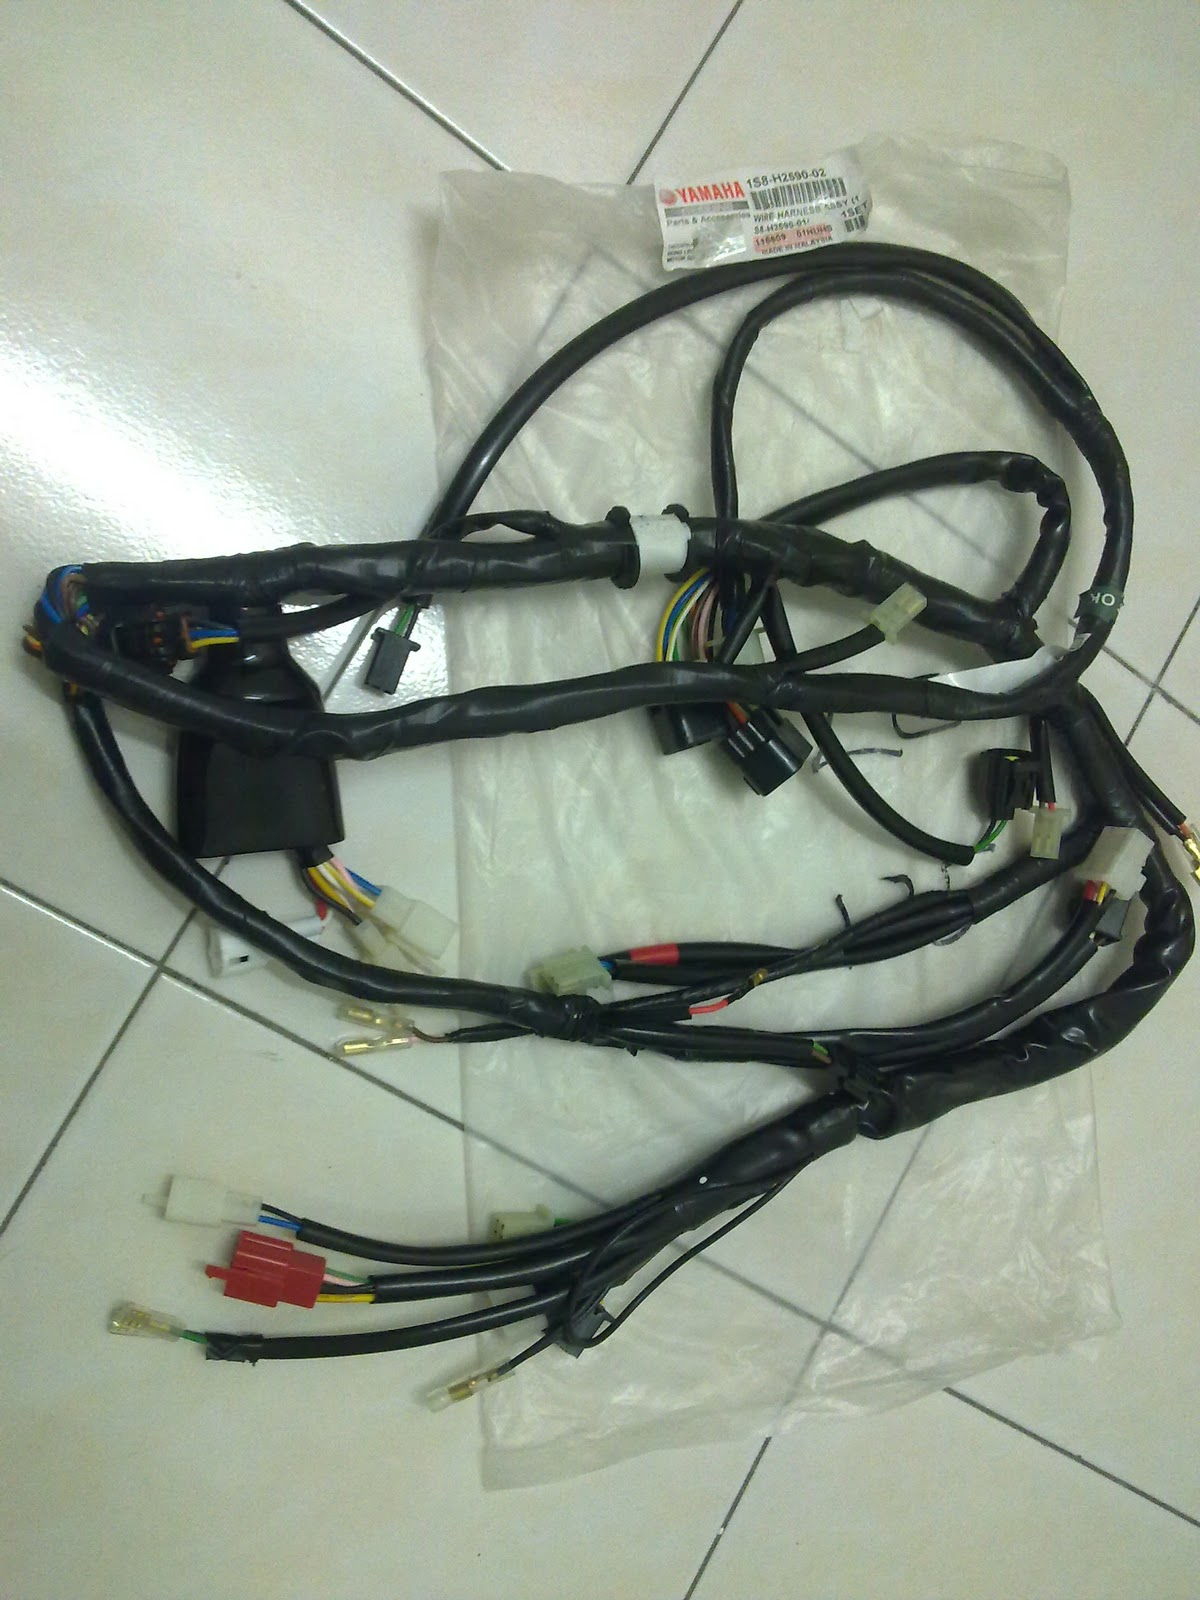 Palex motor parts wiring fullset yamaha lc135 jupiter mx sniper wiring fullset yamaha lc135 jupiter mx sniper crypton x 135 spark 135 cheapraybanclubmaster Image collections